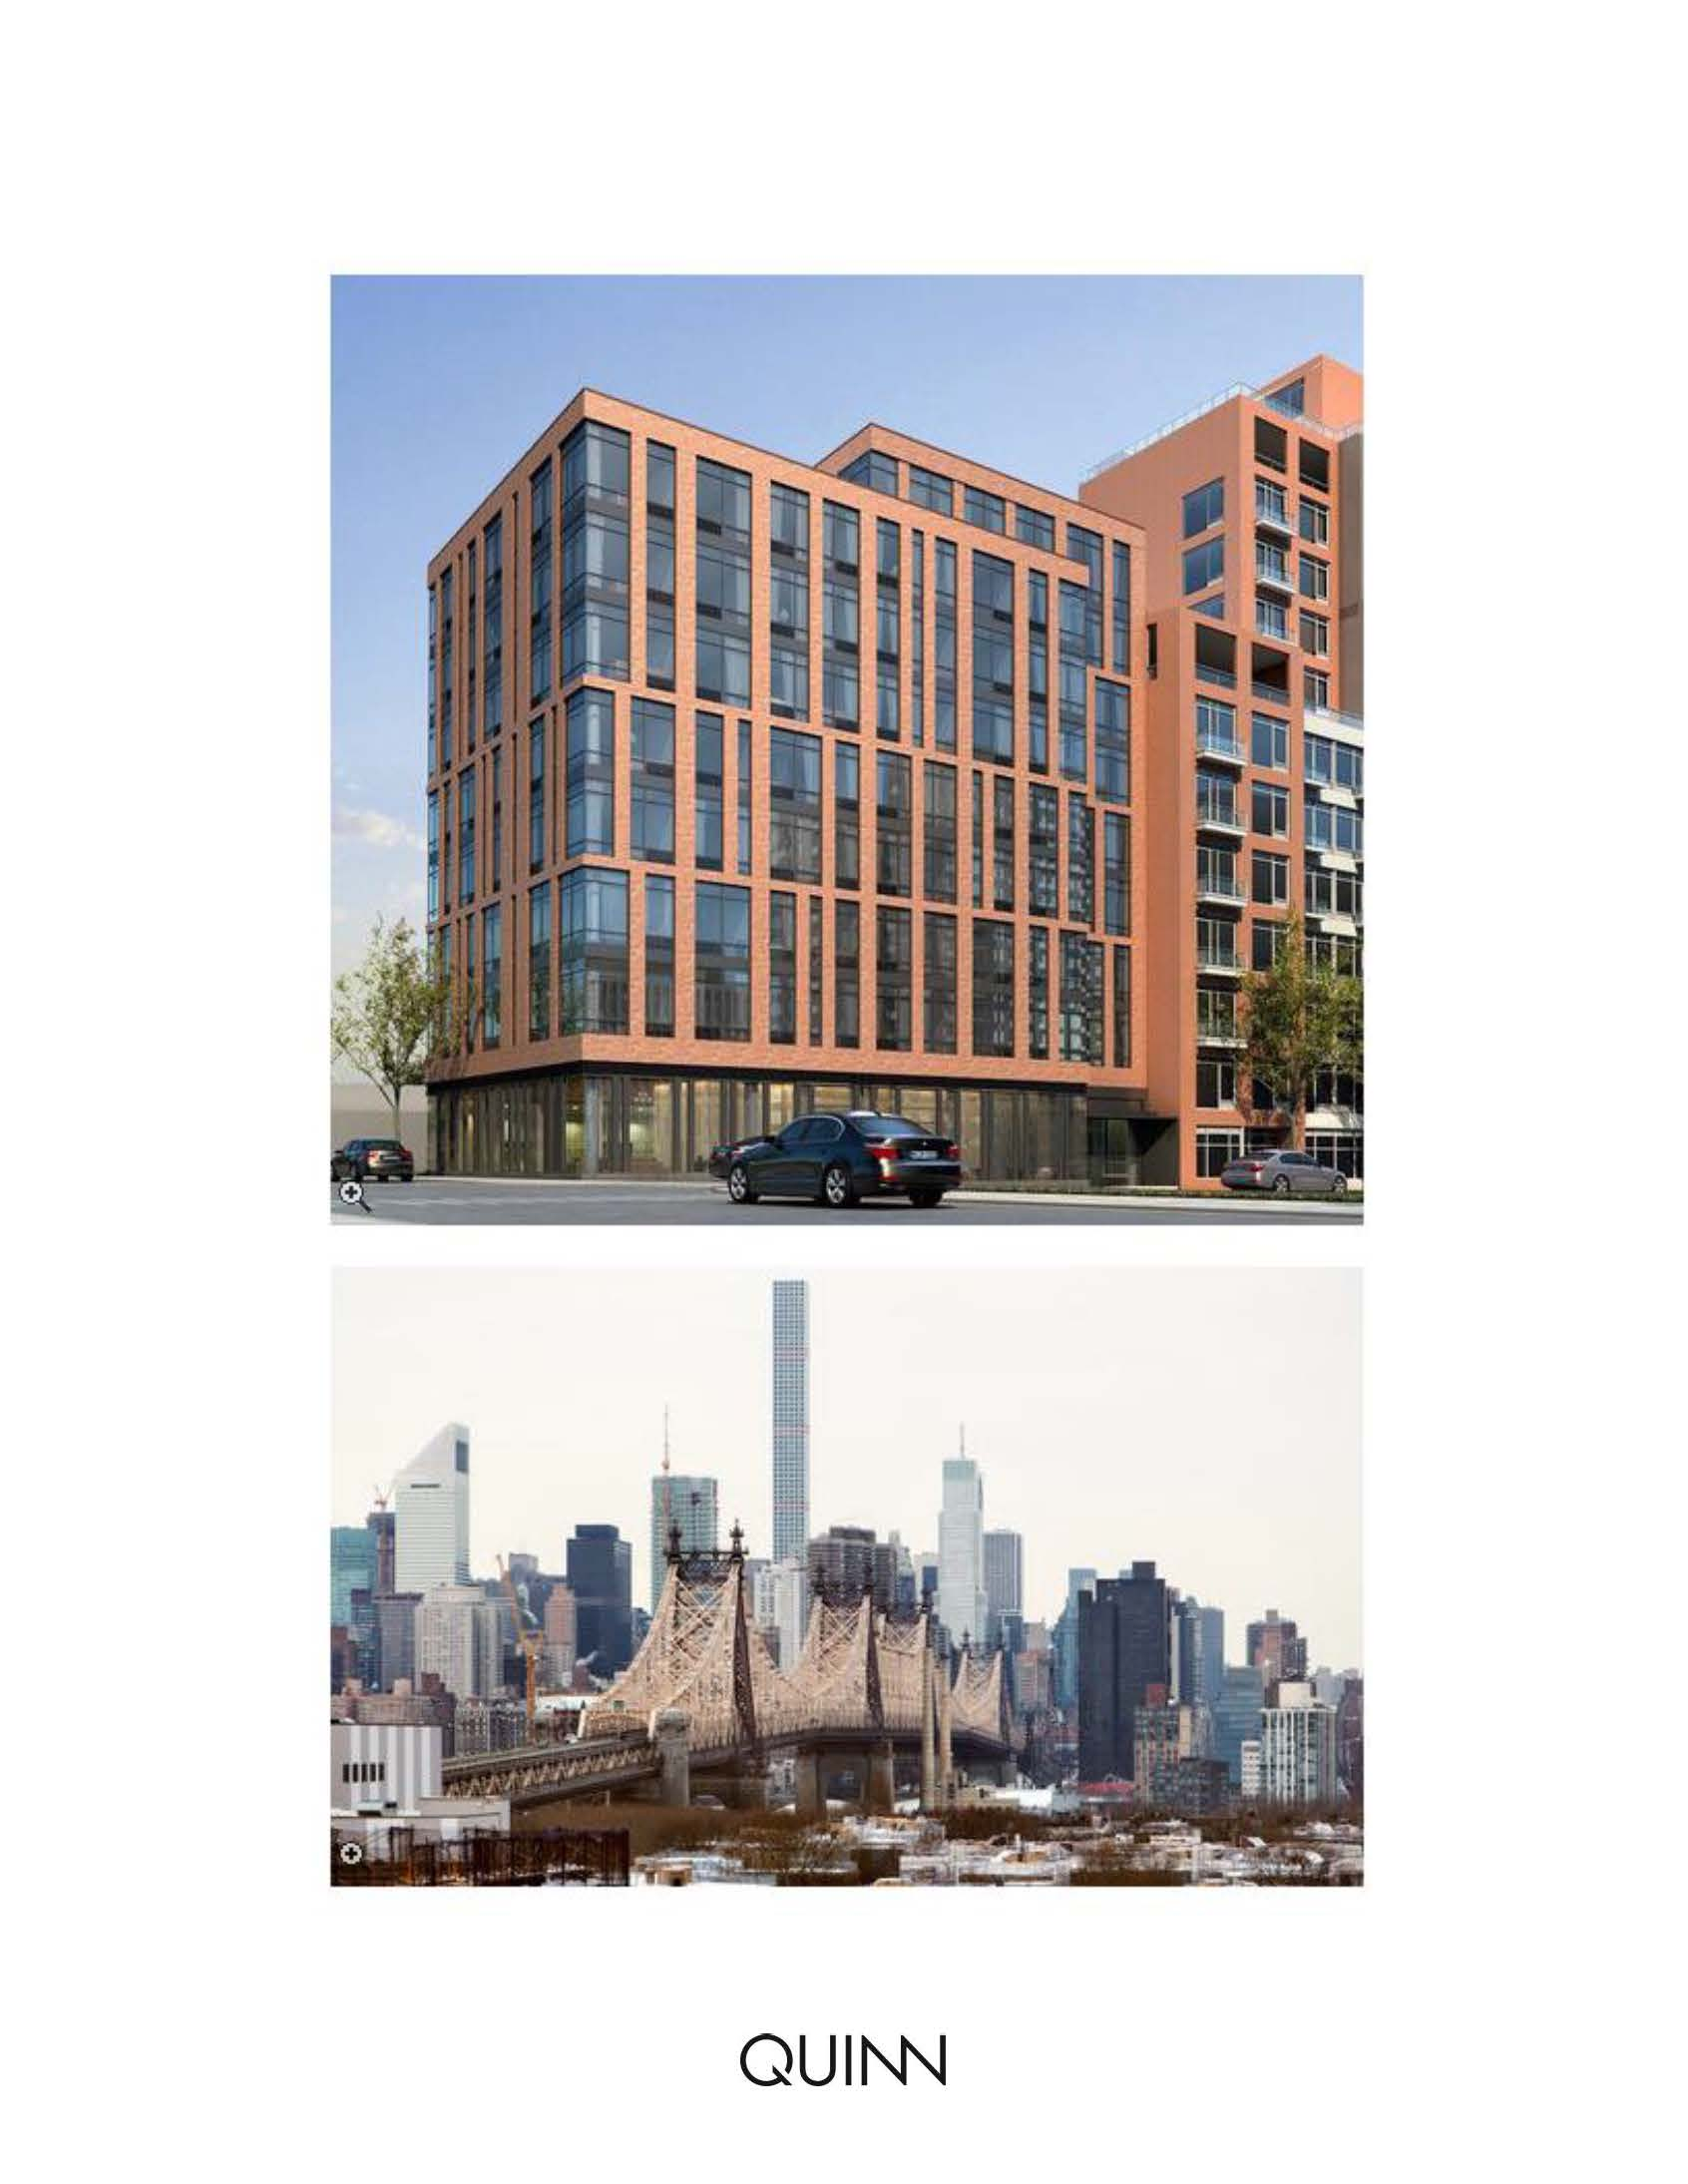 Curbed NY - Boutique' LIC Rental Harks Back to Neighborhood's History - ..._Page_4